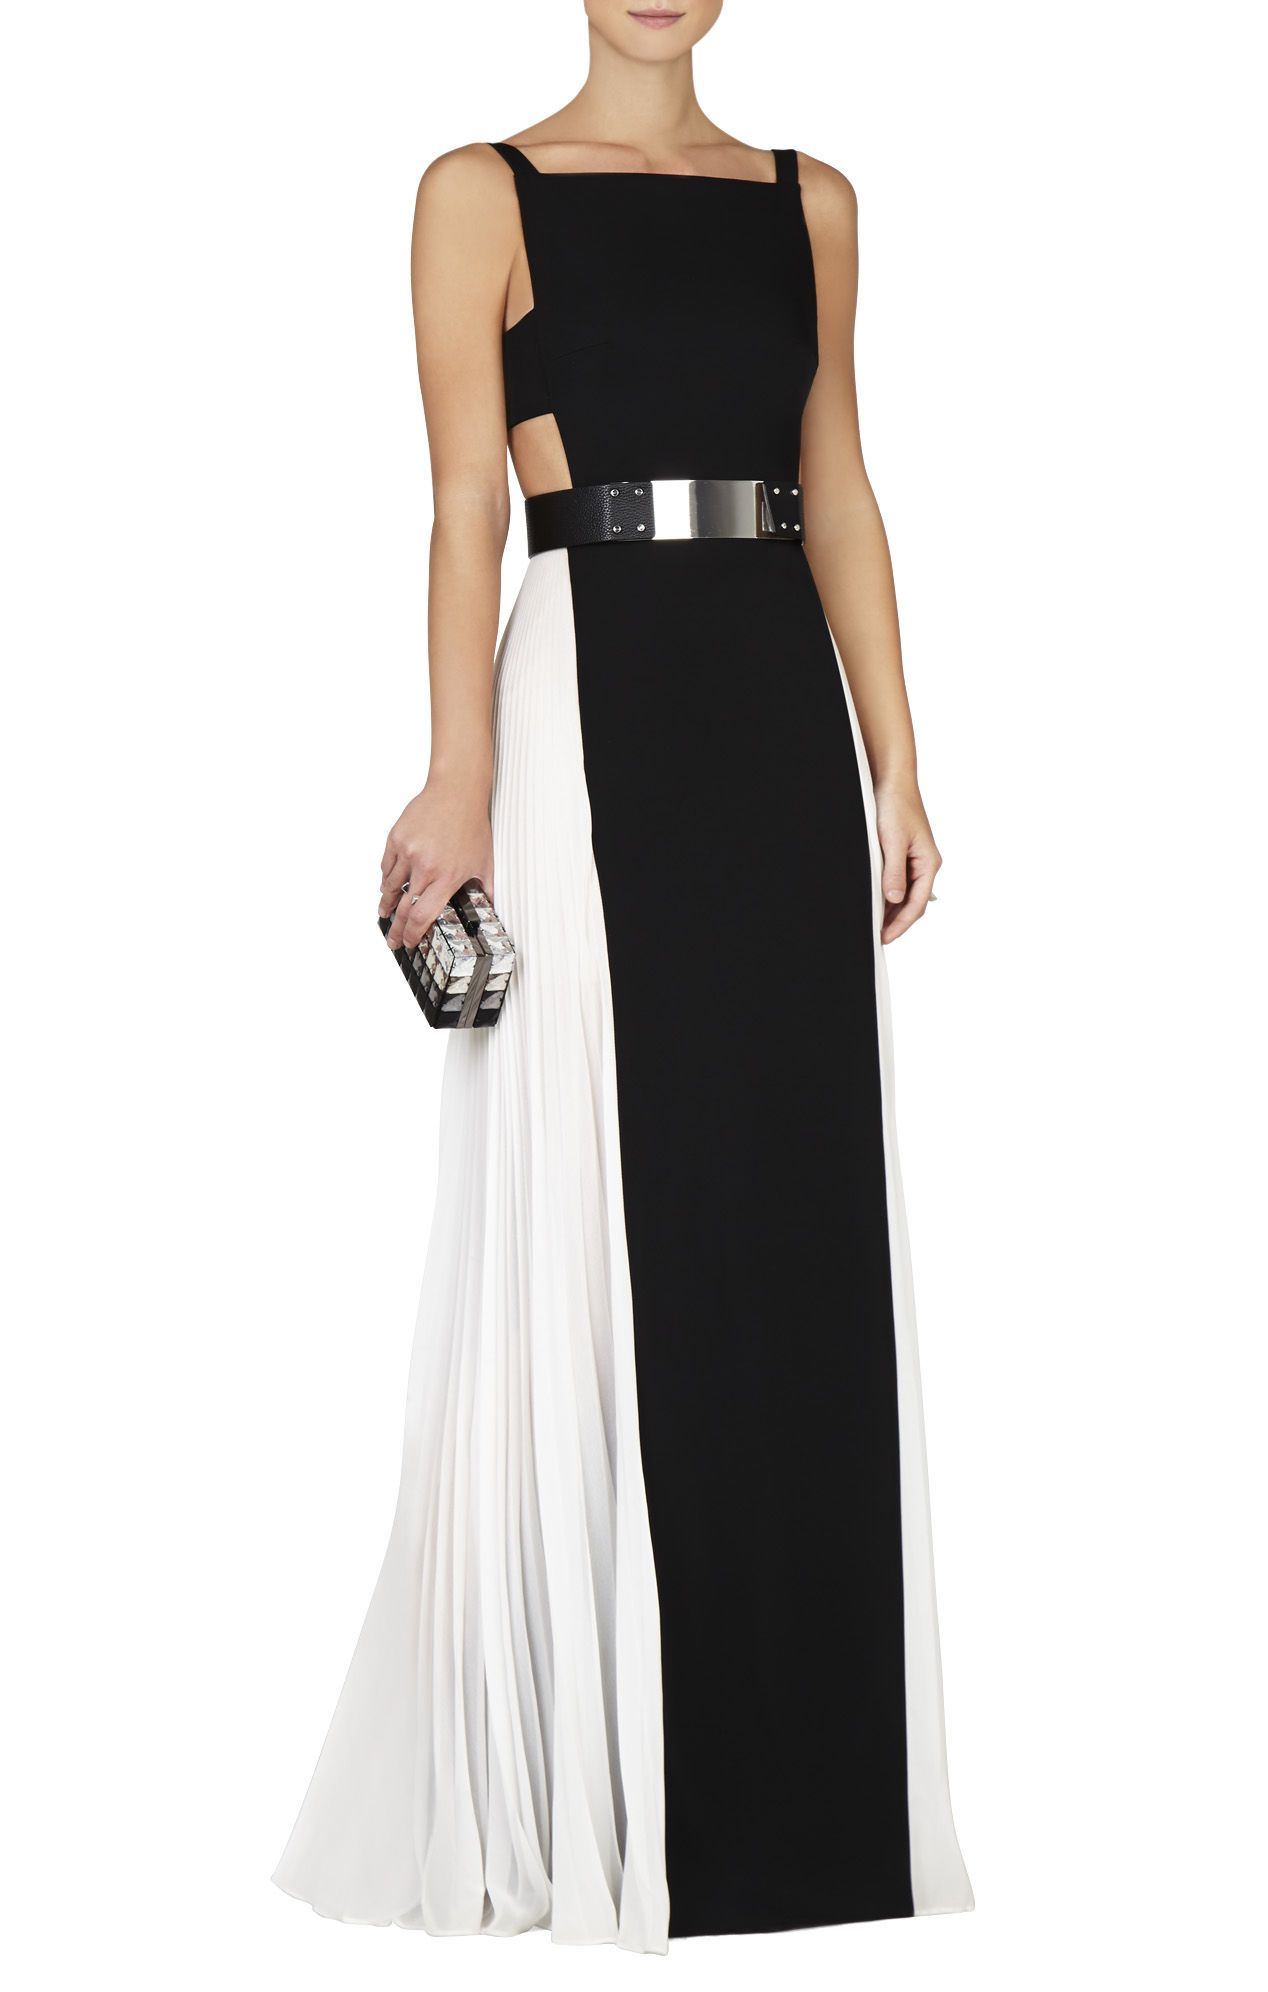 Bcbg dress black and white